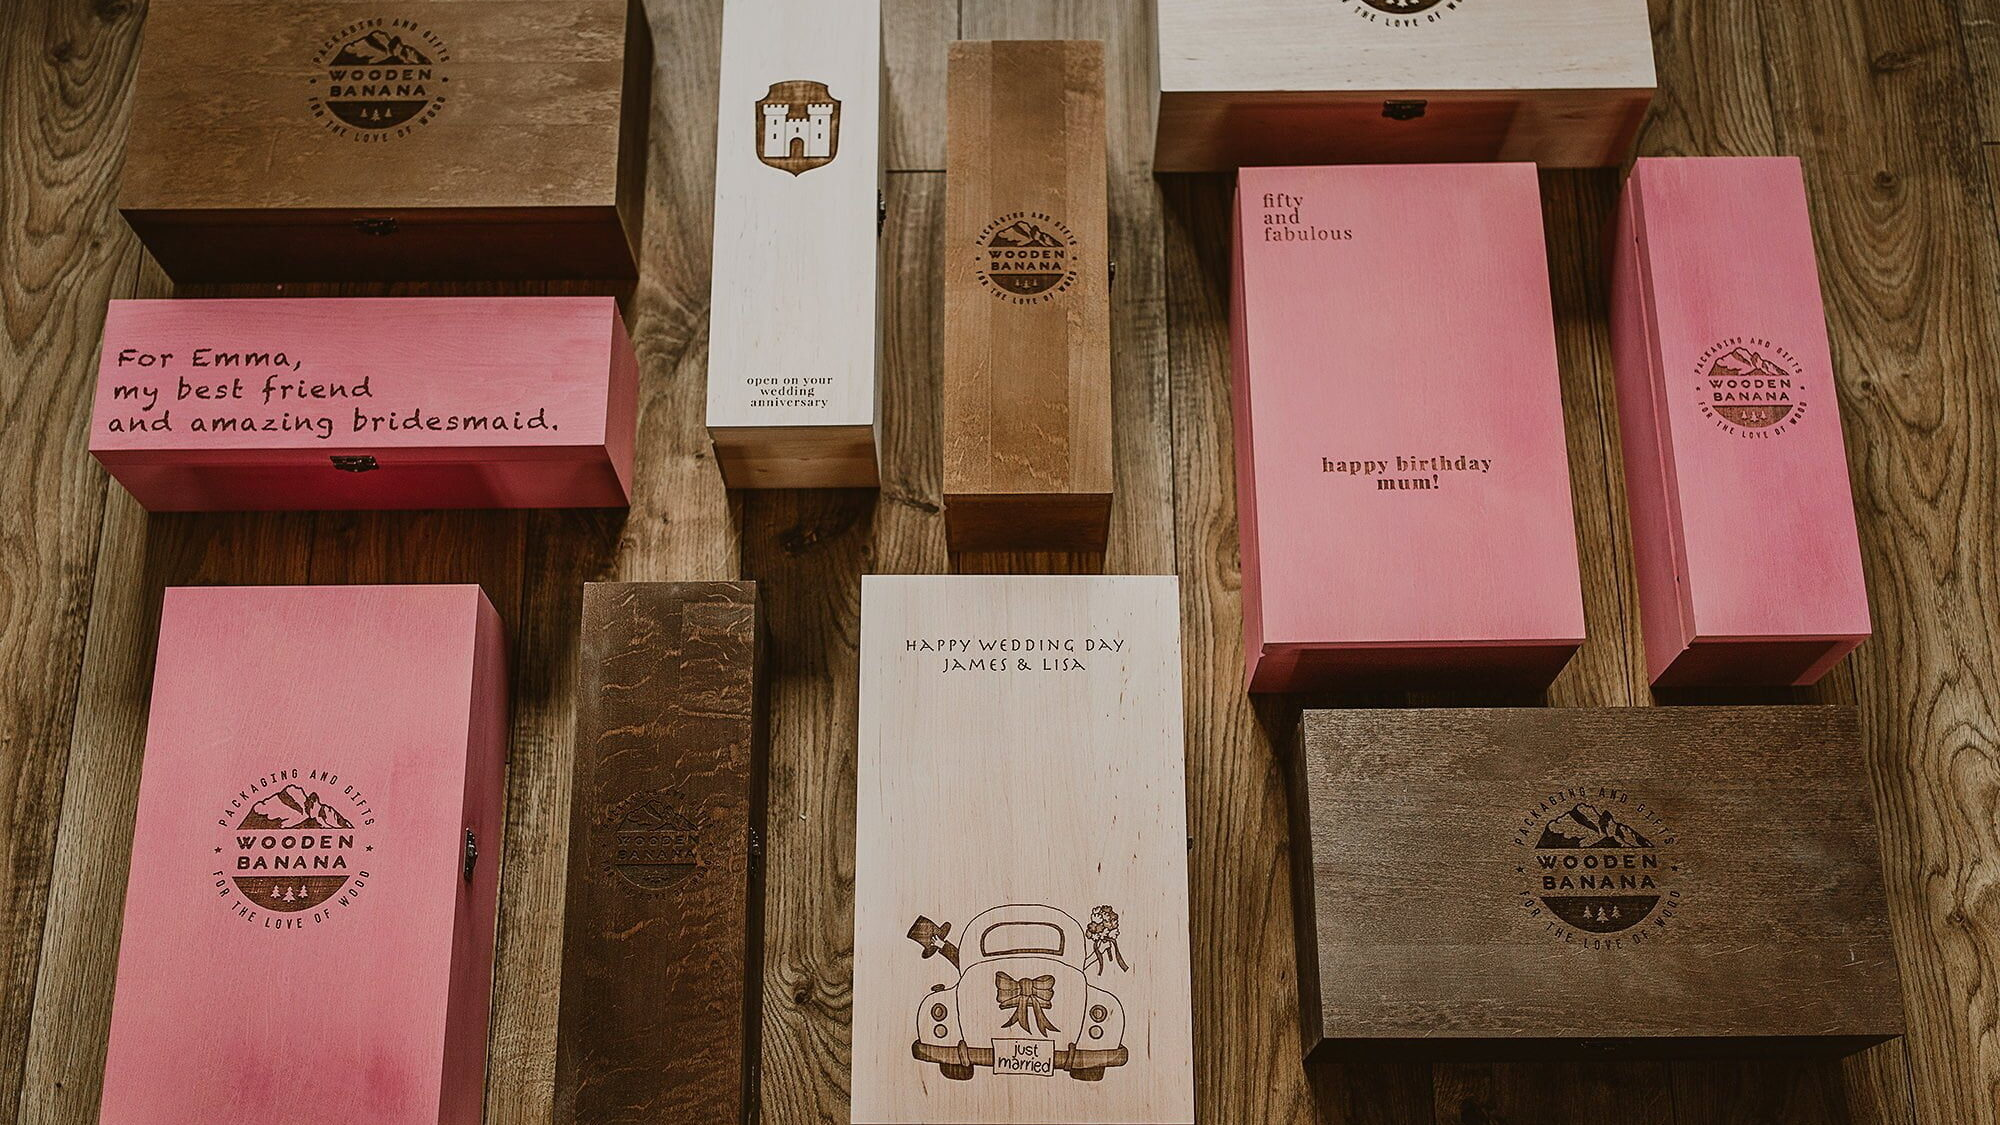 Wooden Banana Top 3 - ideas how to use Wine Boxes 5